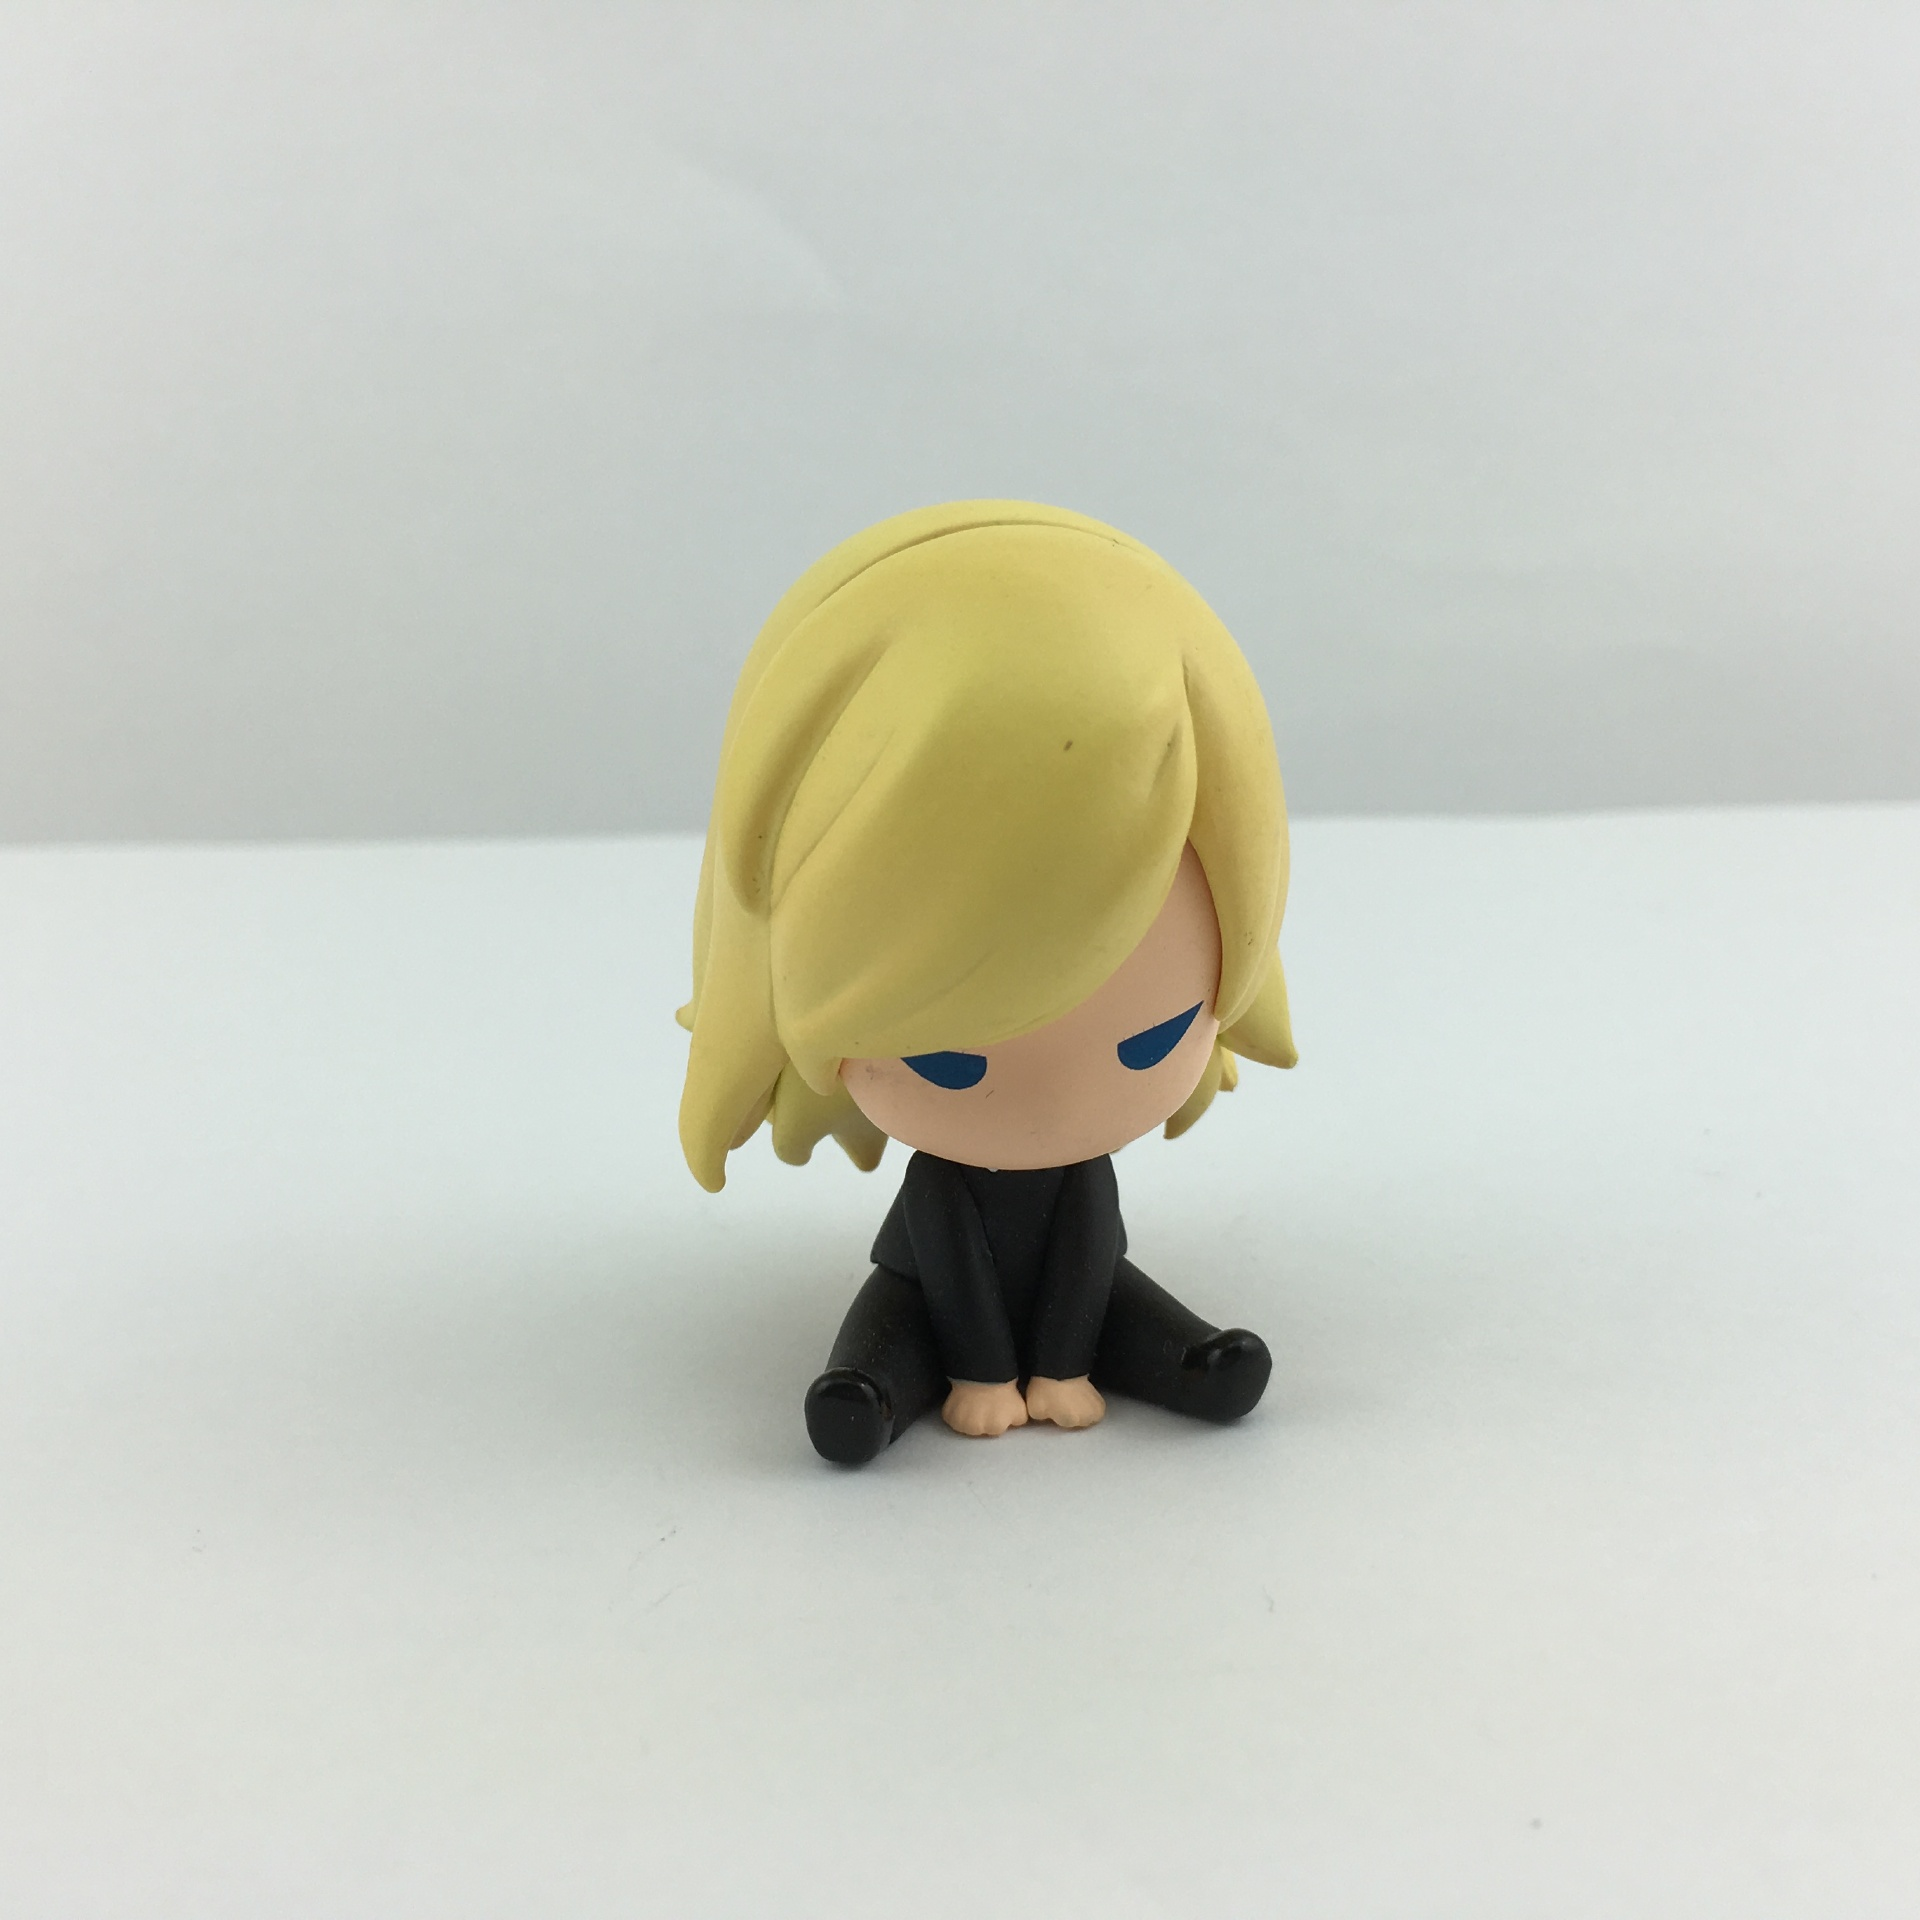 Plastic Anime Figure